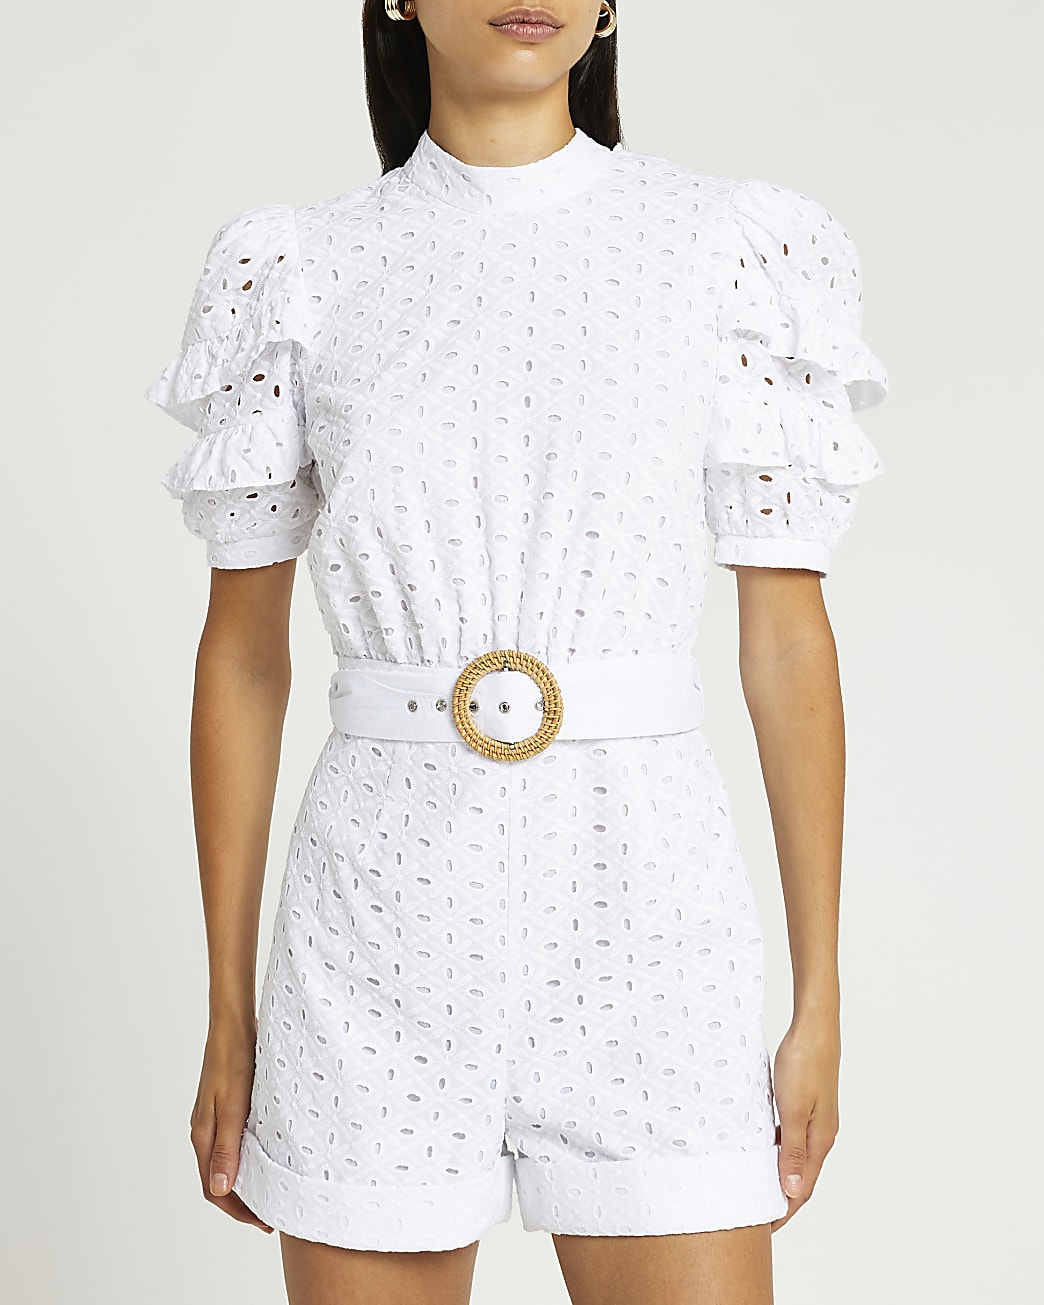 White broderie playsuit